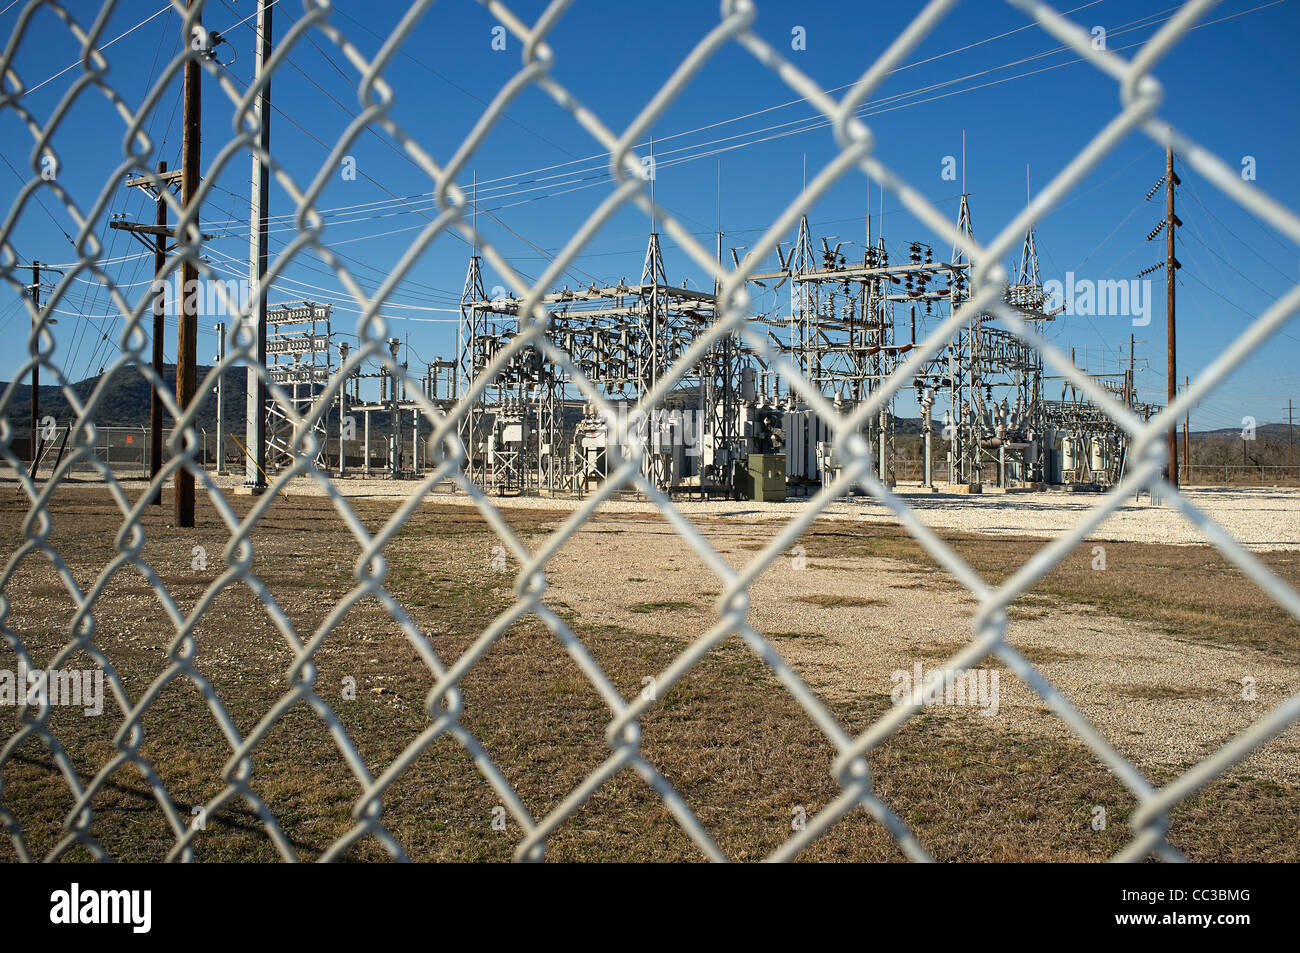 Electricity transformation station behind fence - Stock Image